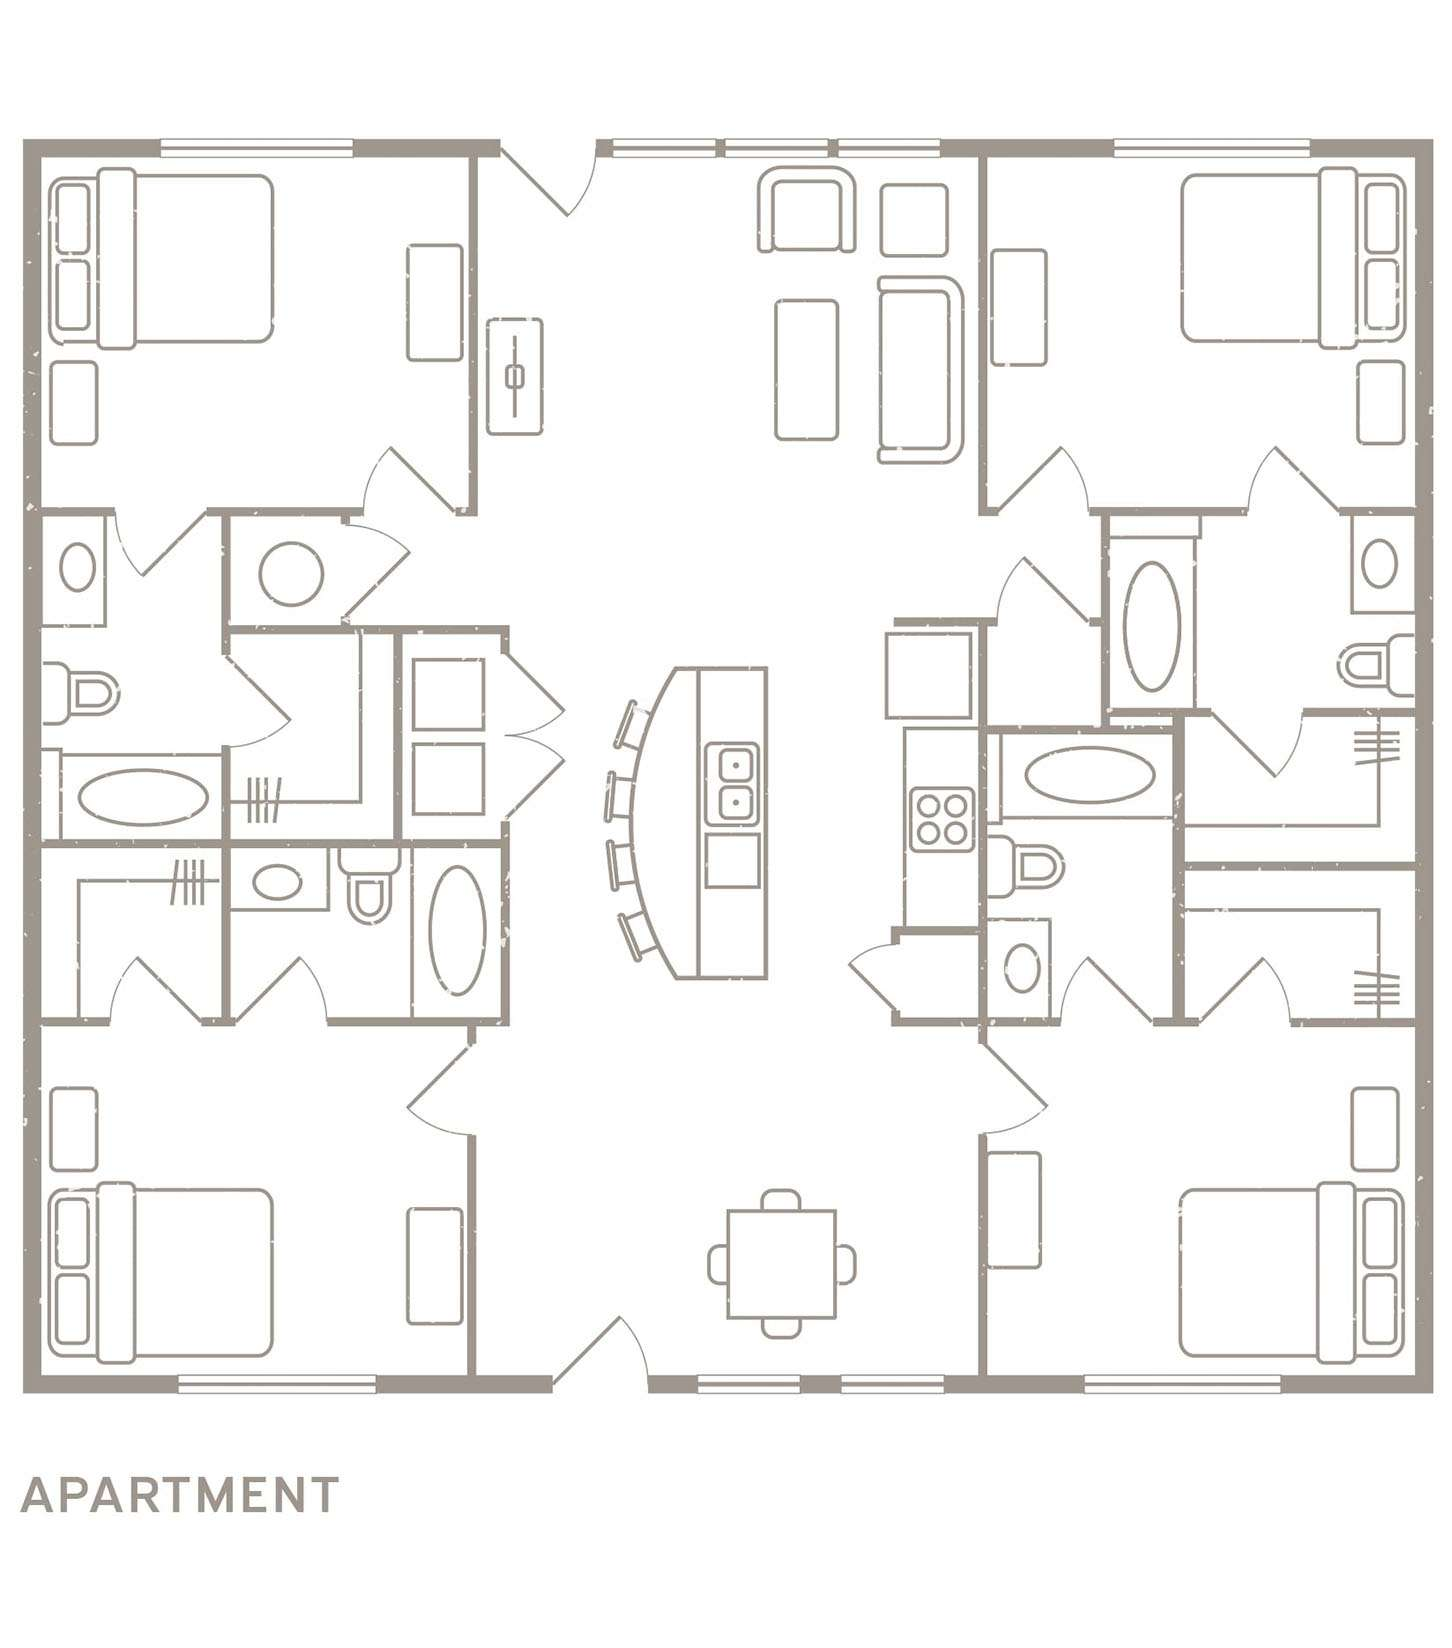 4,3,2 Bedroom Apartment Floorplans - Redpoint Baton Rouge